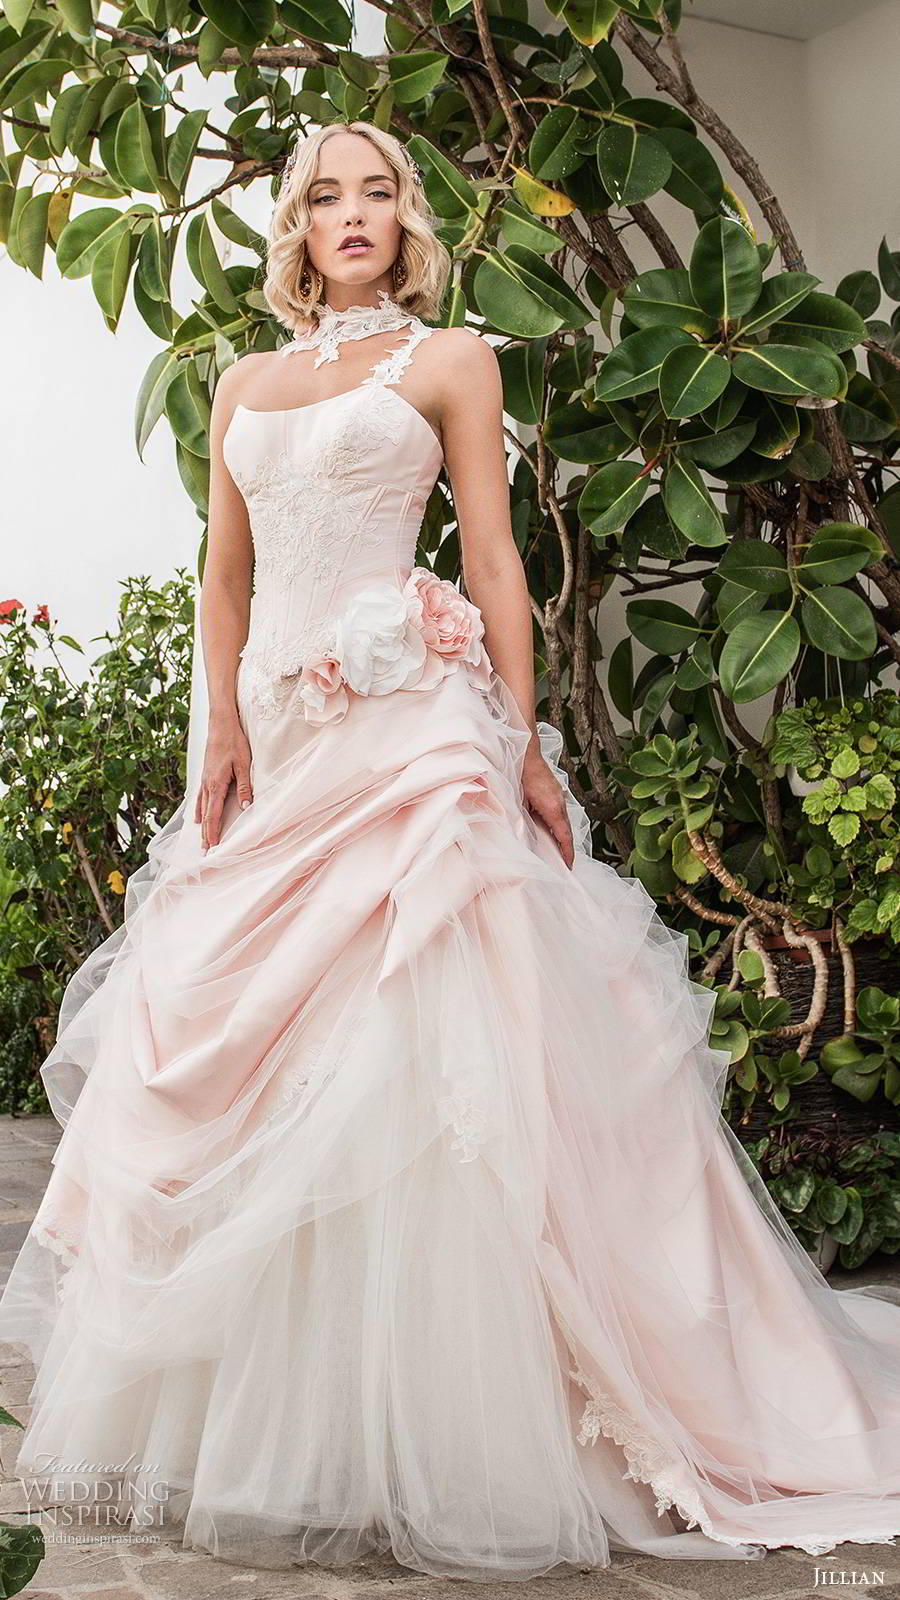 jillian sposa 2020 bridal strapless semi sweetheart neckline embellished corset bodice pickup skirt romantic ball gown wedding dress pink color chapel train (8) mv